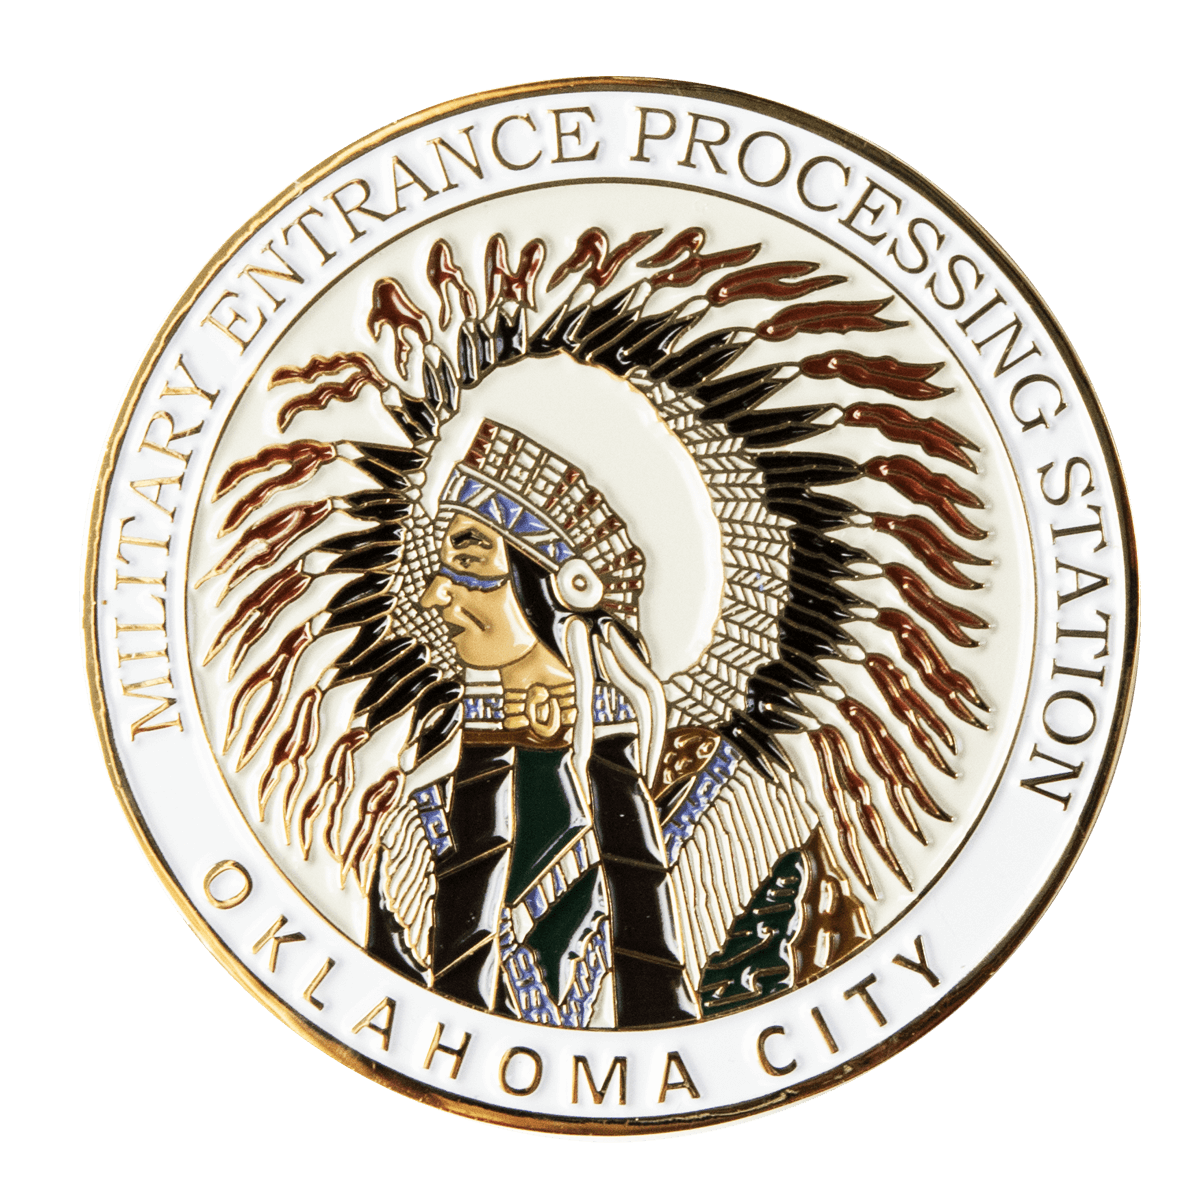 Military Entrance Processing Station Challenge Coin